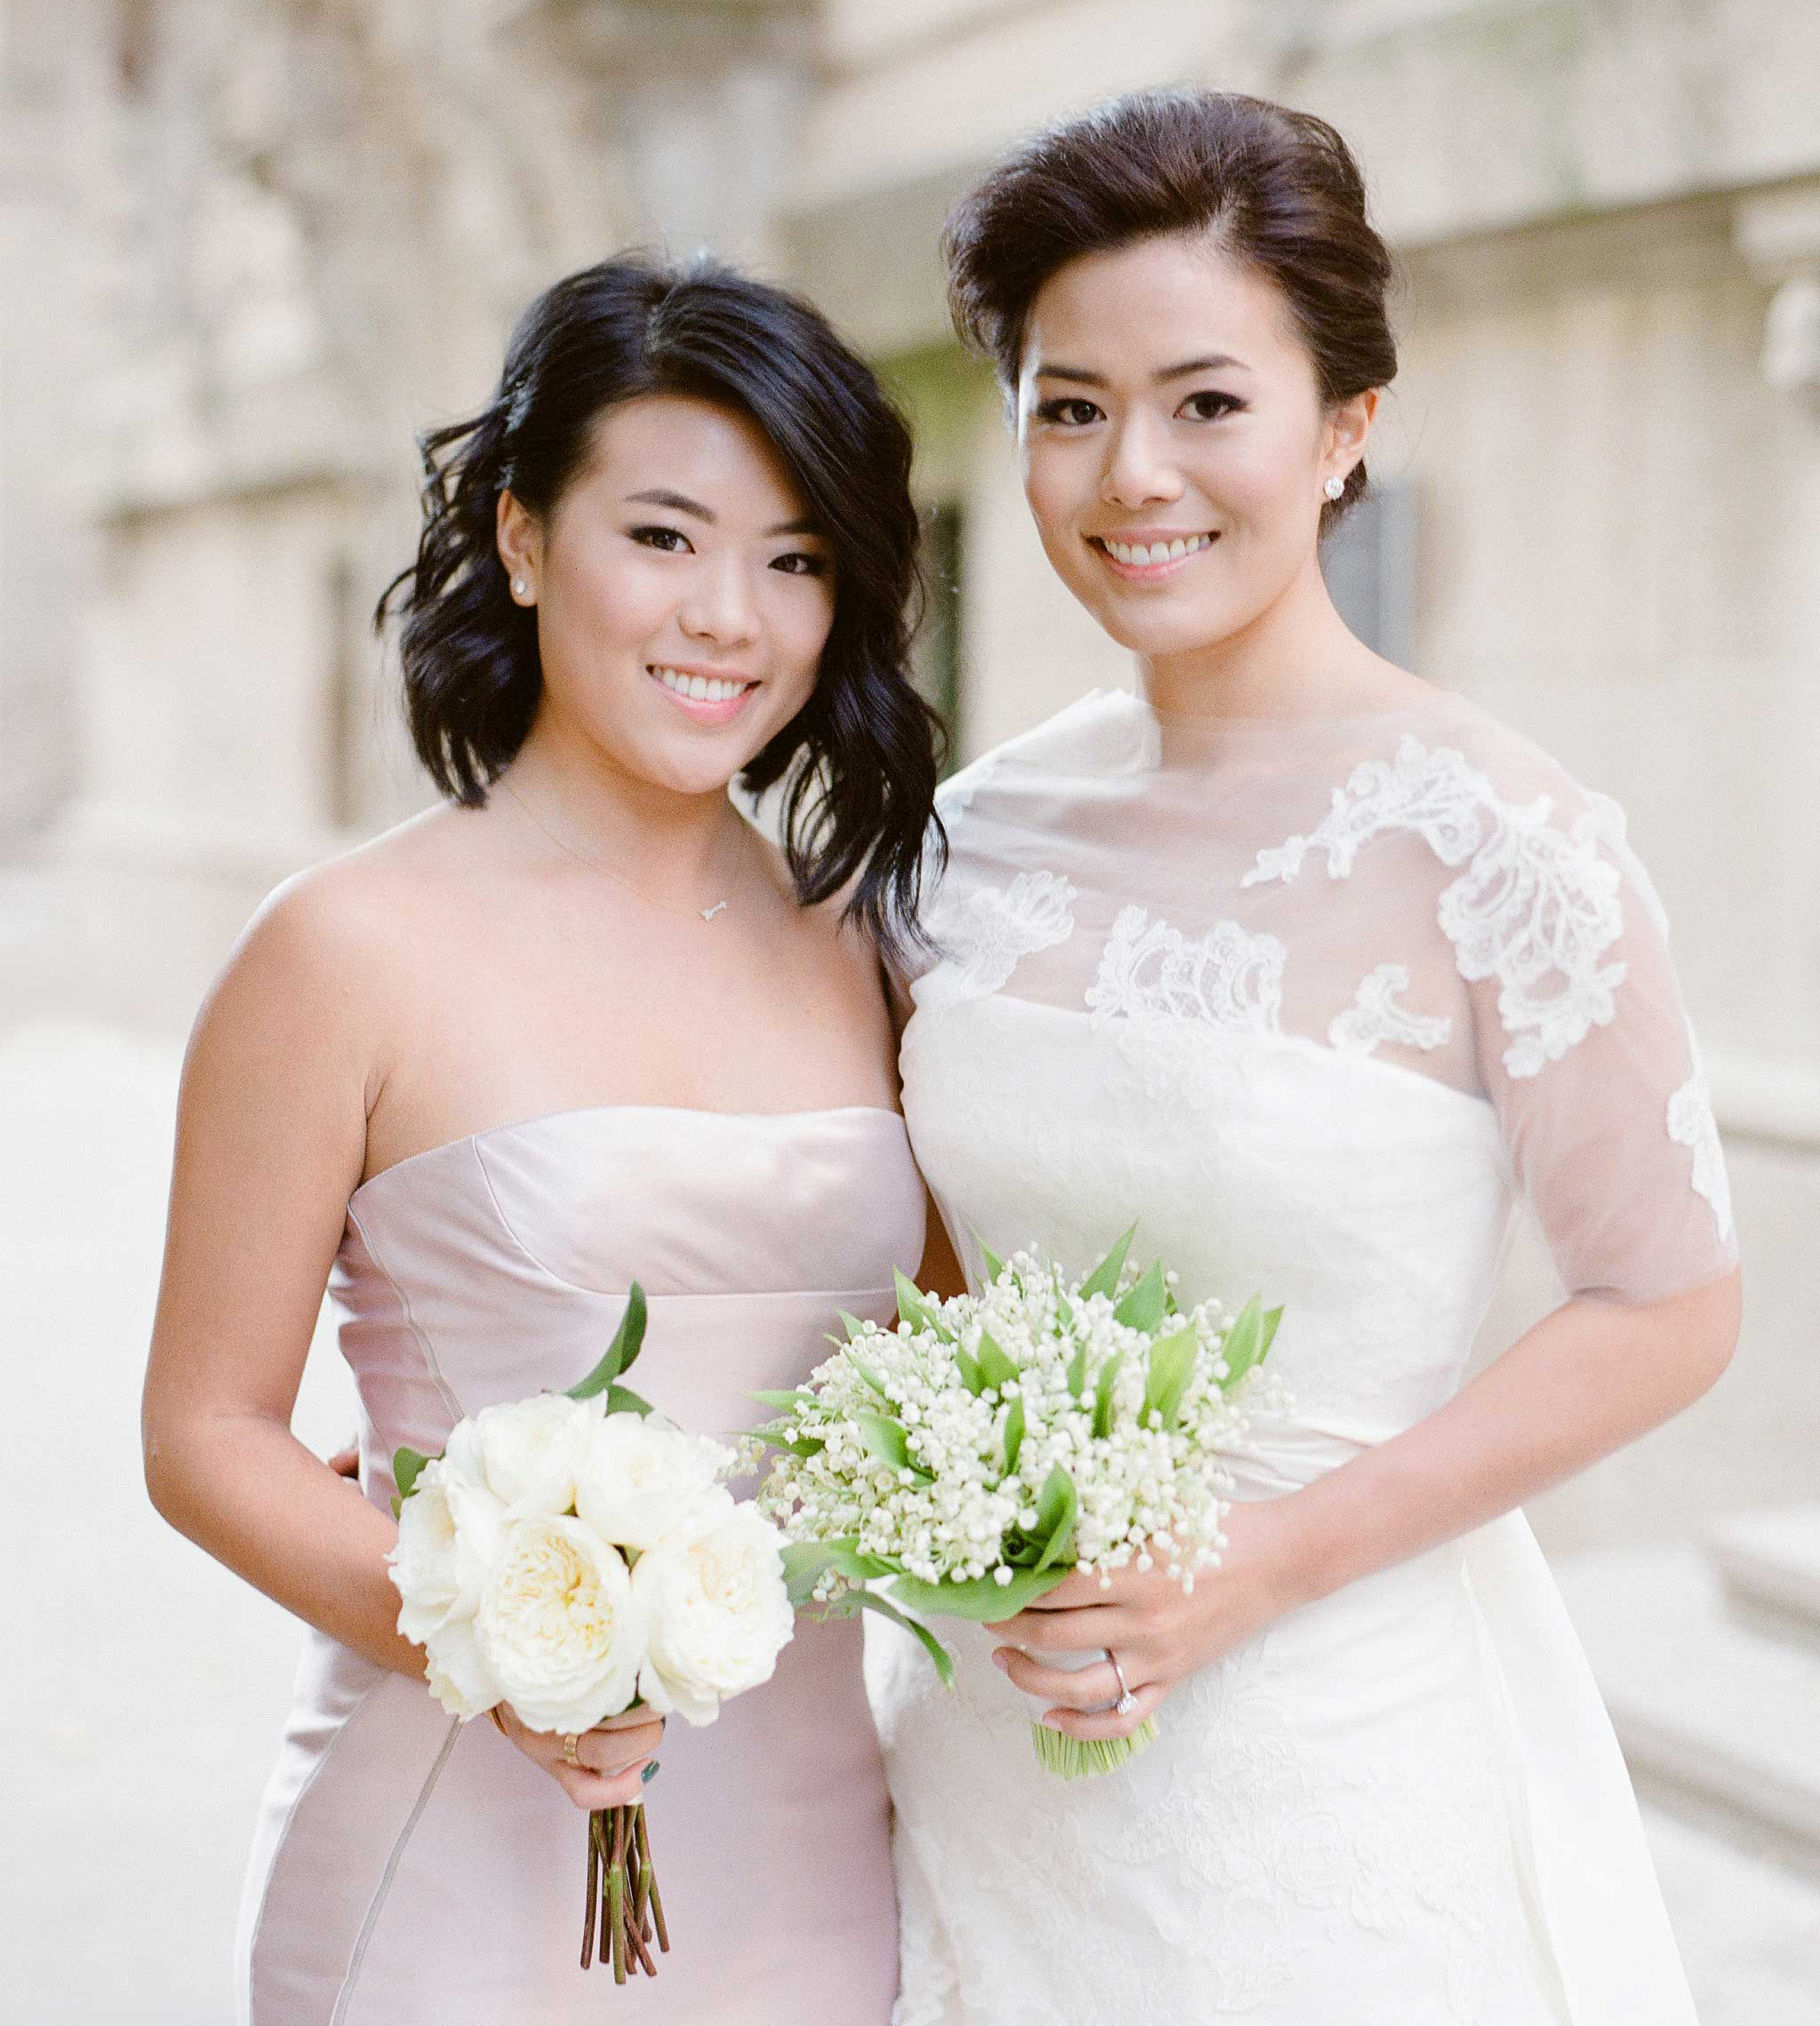 tips for a great maid of honor toast, how to give a maid of honor toast